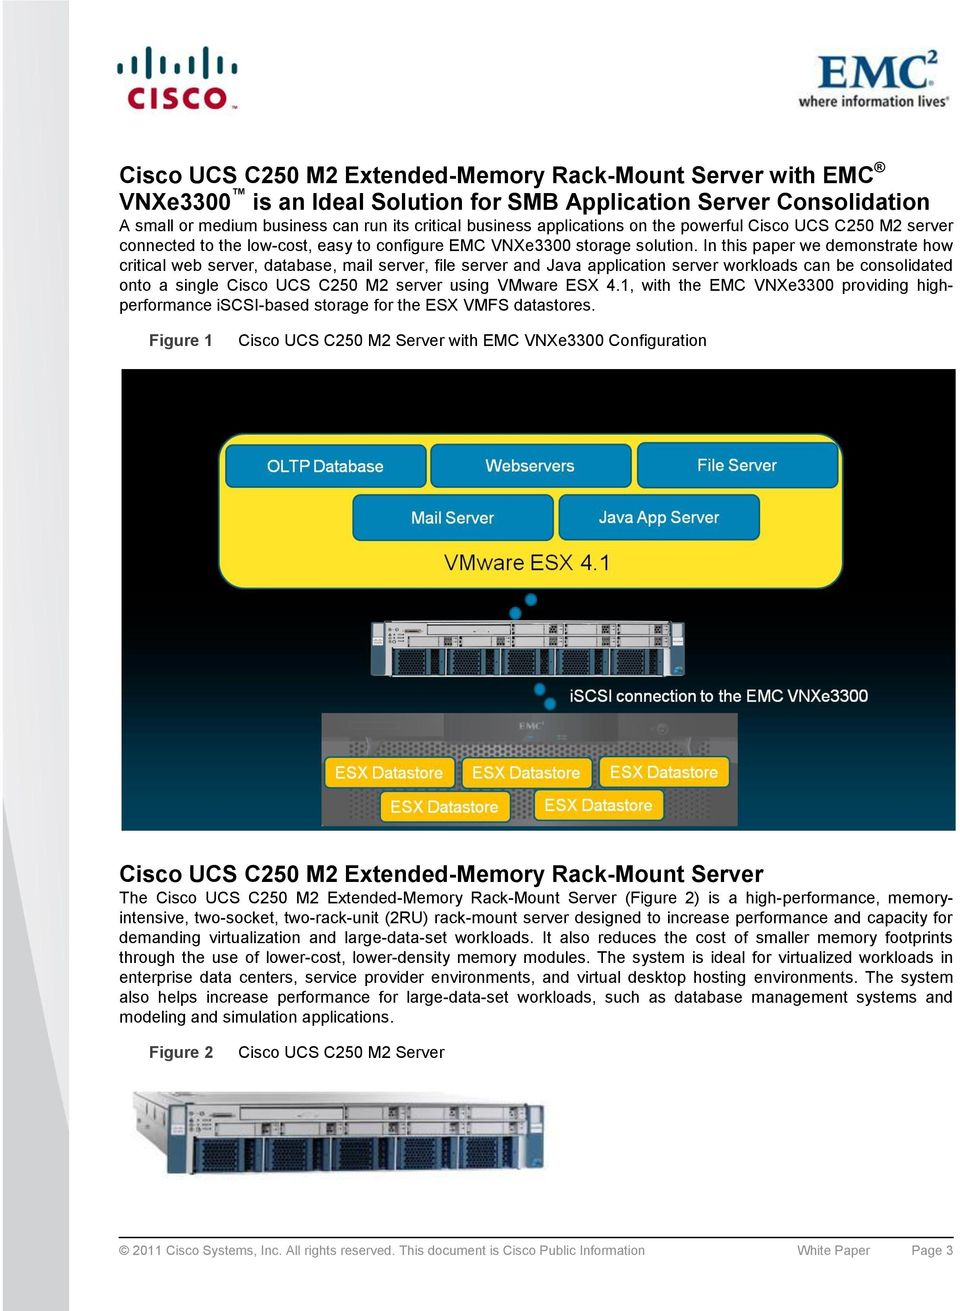 In this paper we demonstrate how critical web server, database, mail server, file server and Java application server workloads can be consolidated onto a single Cisco UCS C250 M2 server using VMware